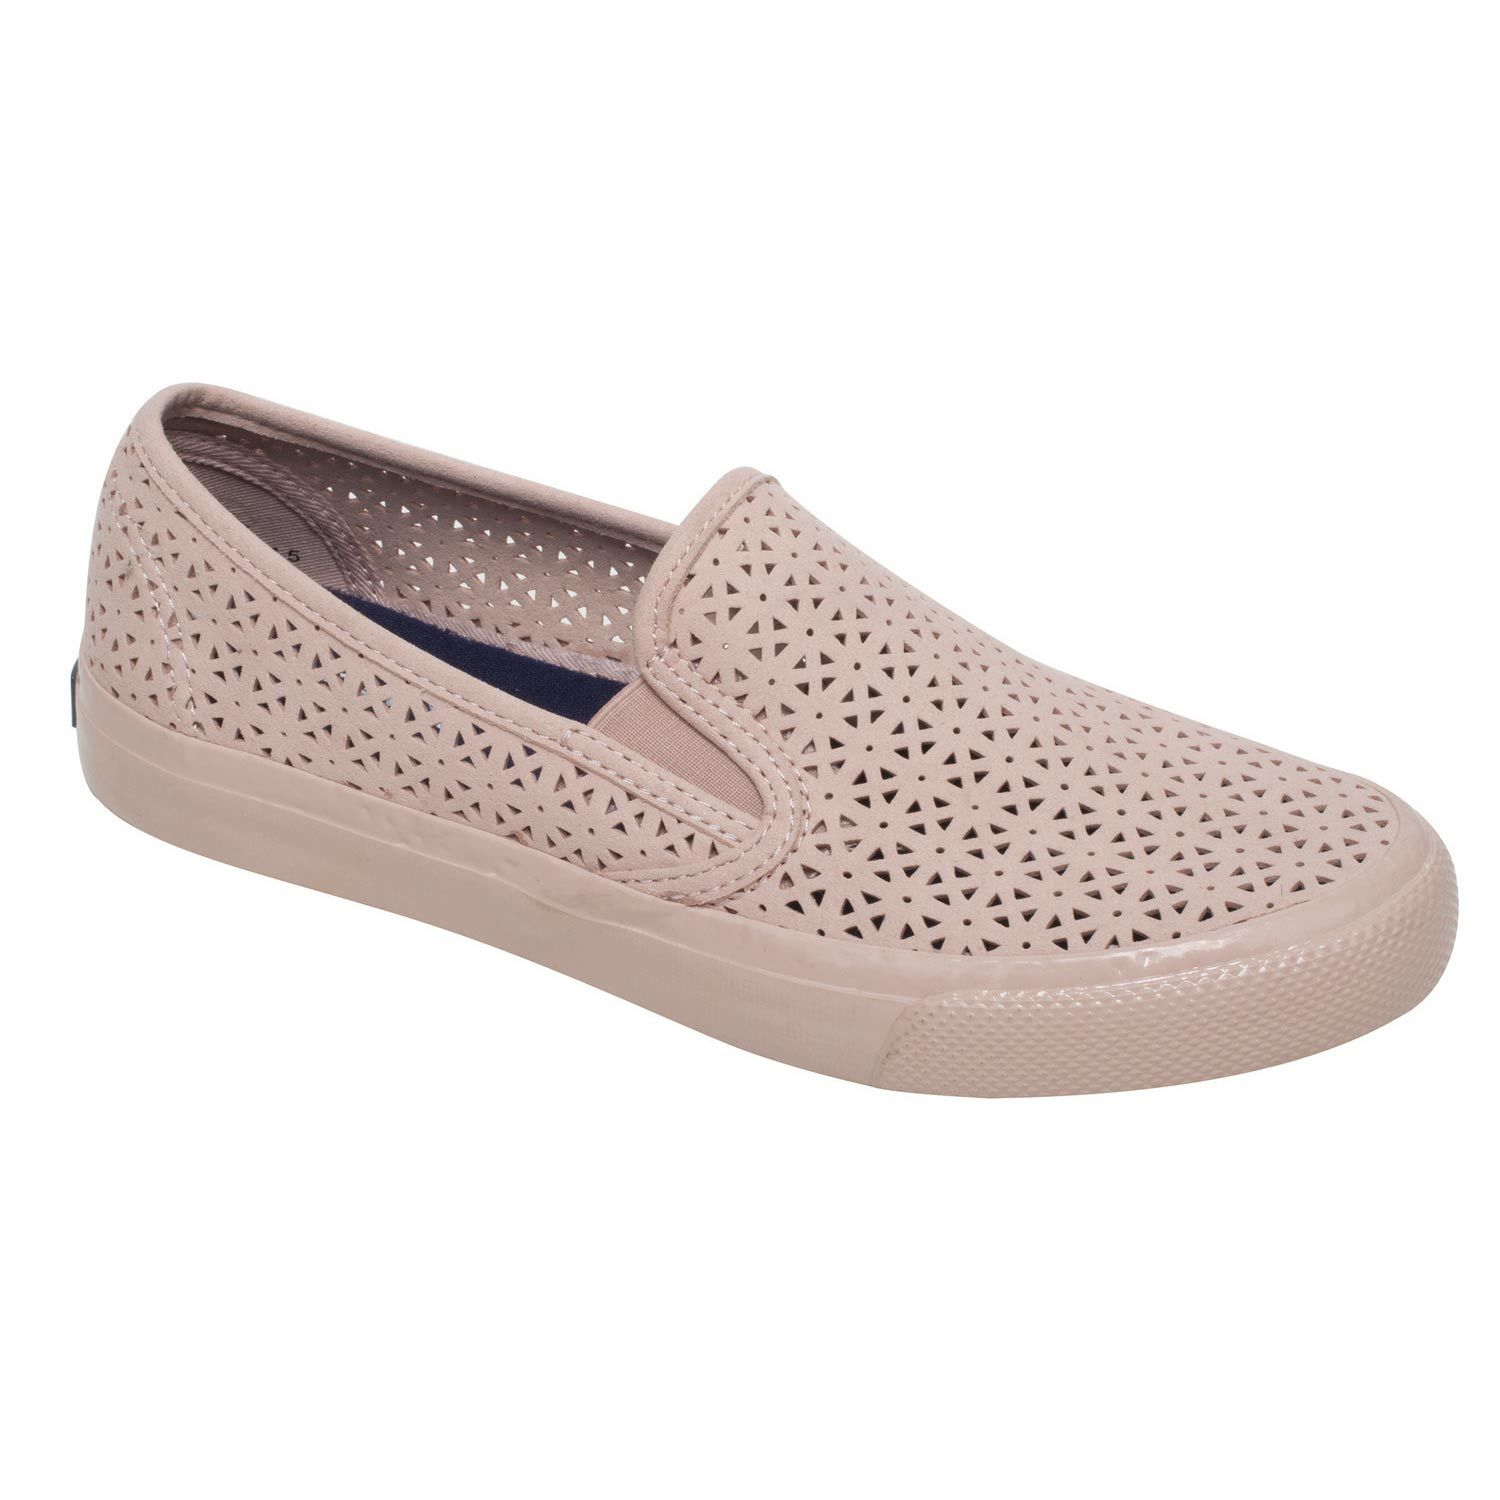 slip on perforated sneakers